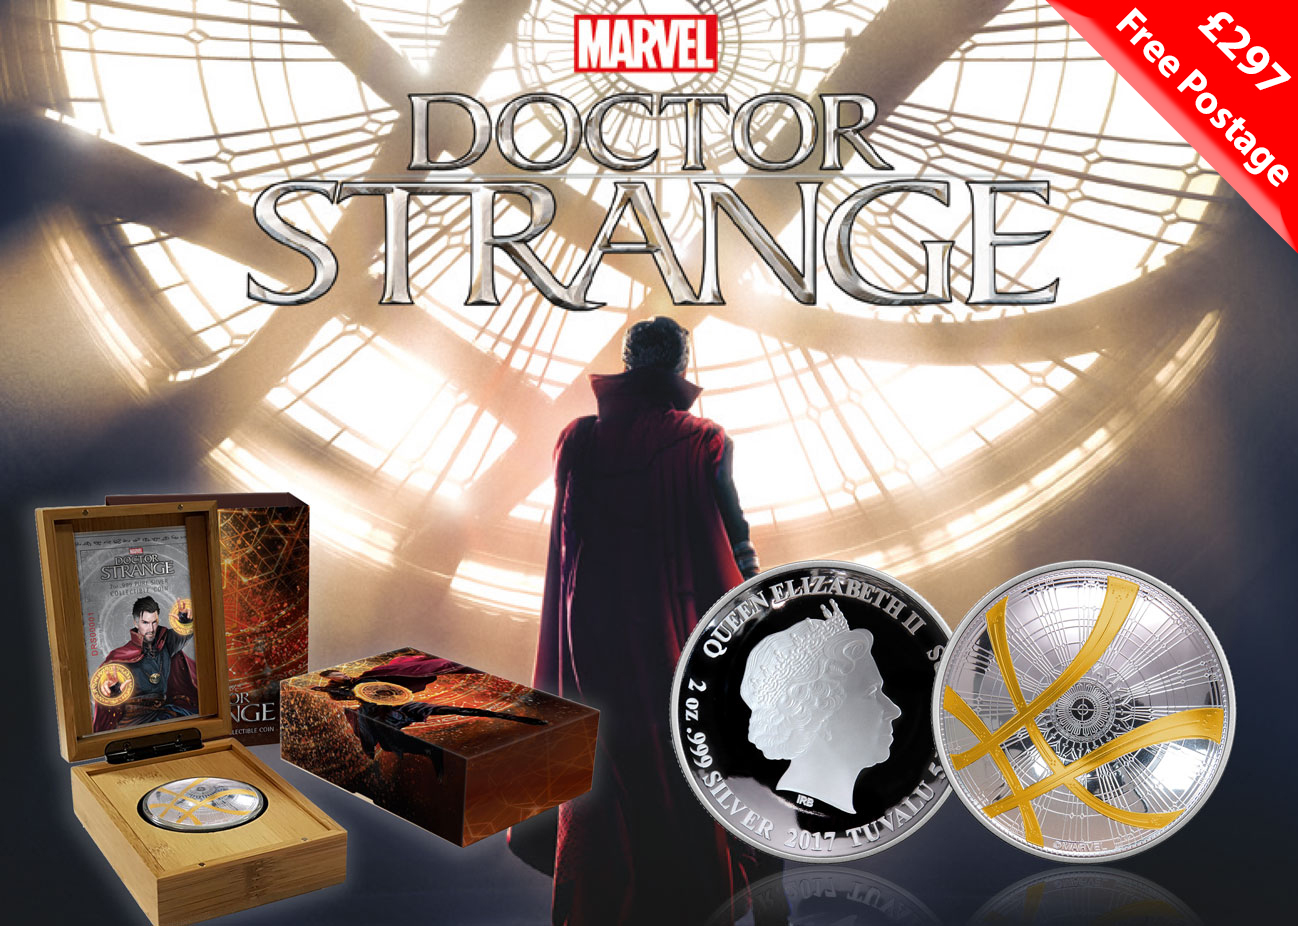 The 2017 Doctor Strange Silver Coin